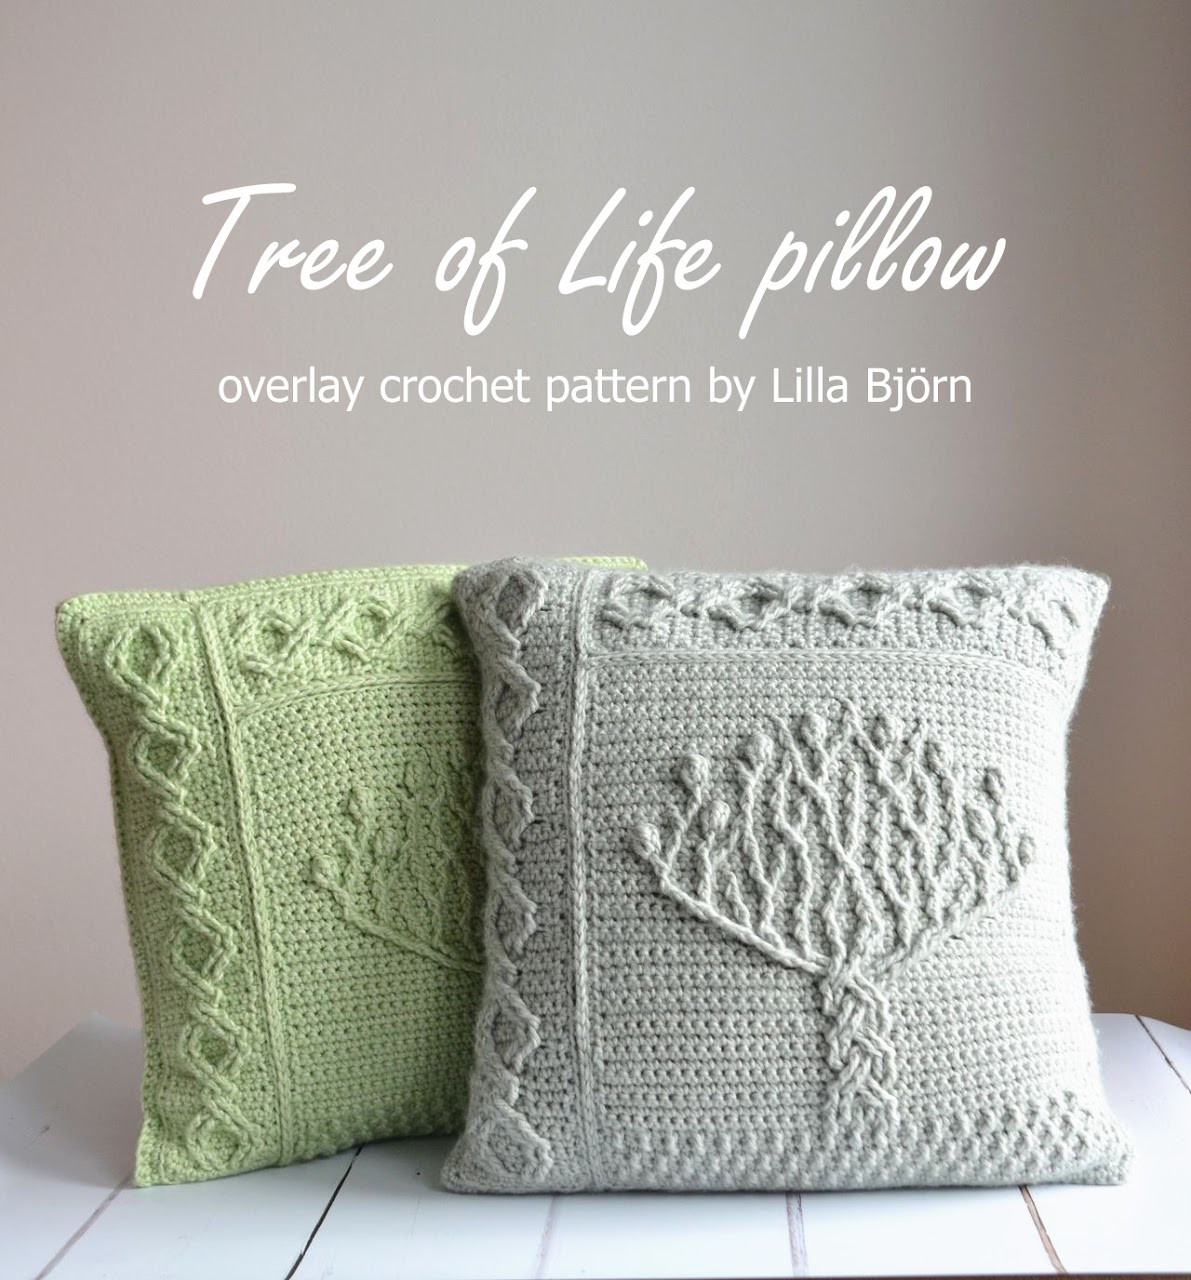 Crochet Pillow Cover Pattern New Tree Of Life Pillow – New Overlay Crochet Pattern Of Lovely 47 Images Crochet Pillow Cover Pattern